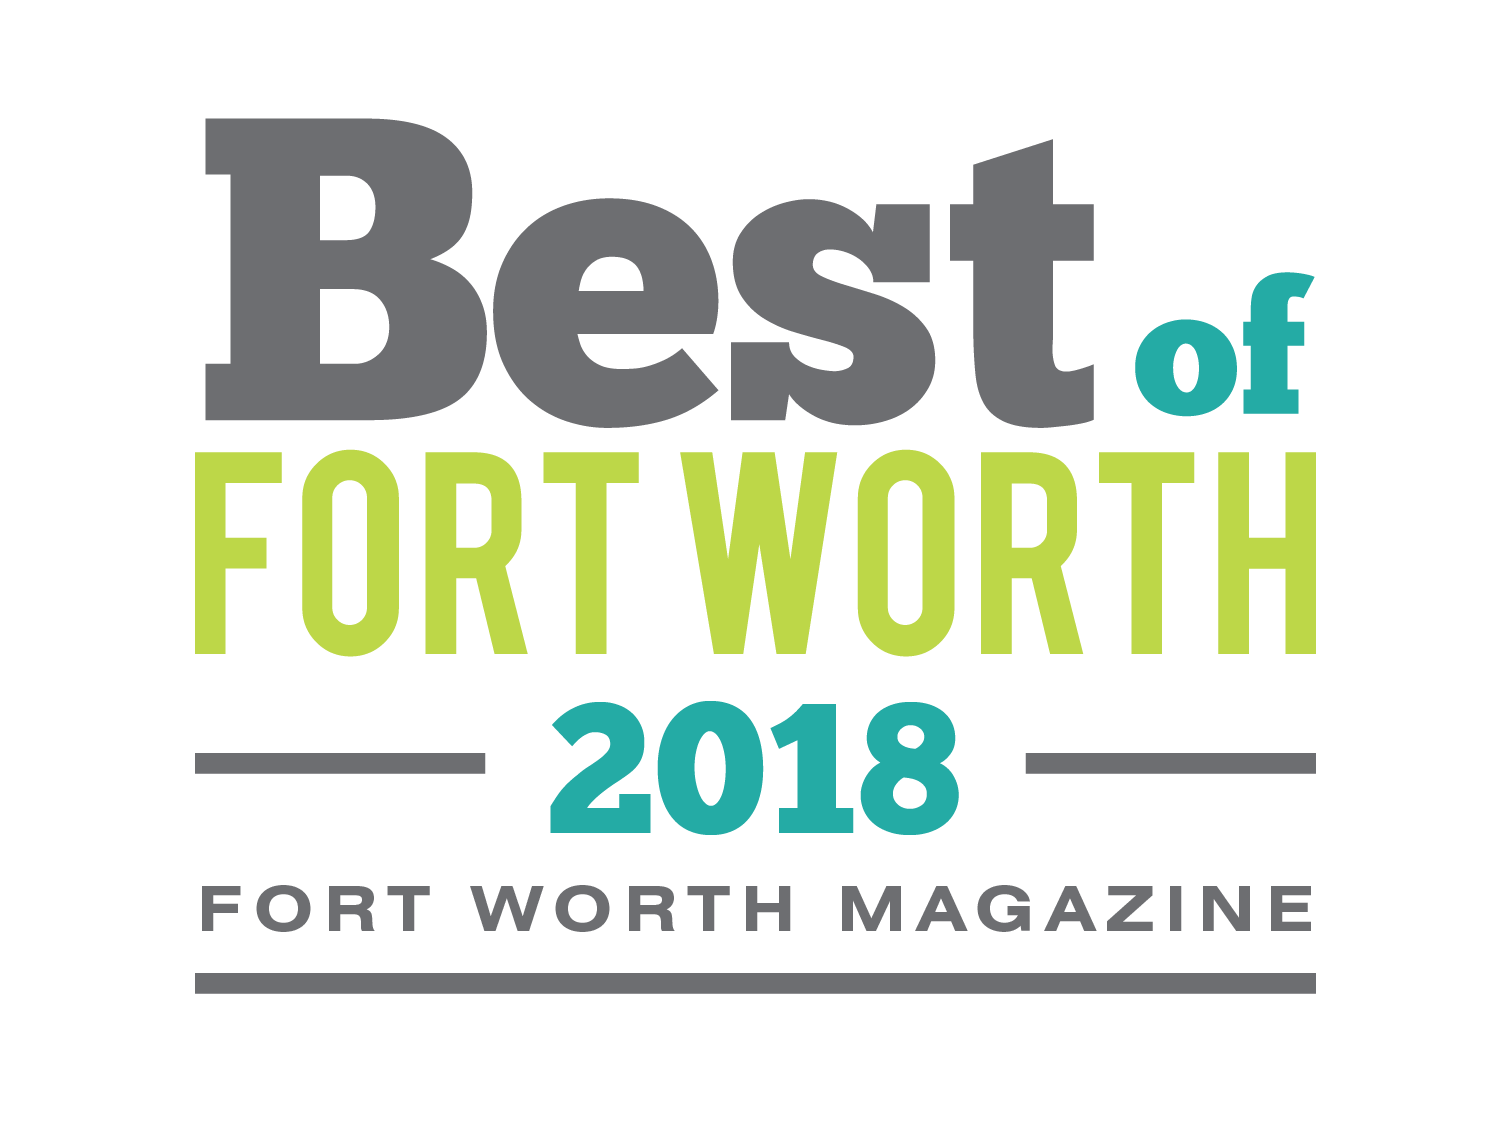 Best of Fort Worth 2018 - Best Travel Agency - Gulliver's Travel Service - FortWorth Magazine